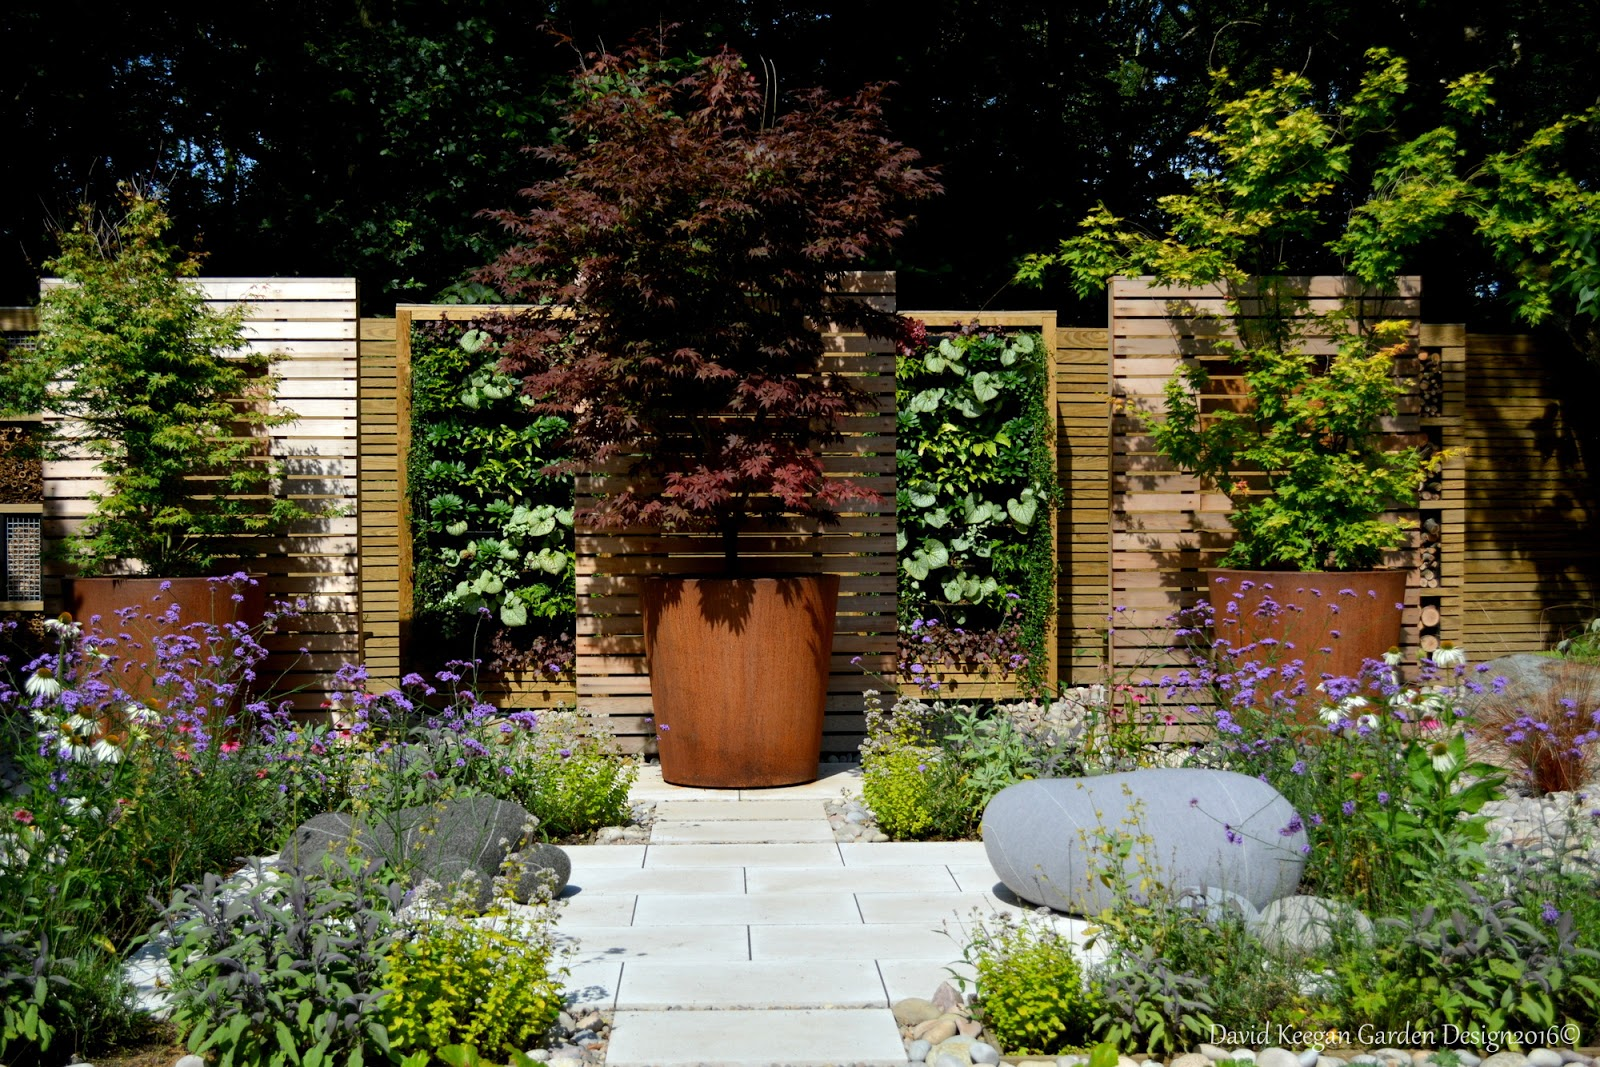 David Keegans Garden Design Blog: Eco Garden Design ...